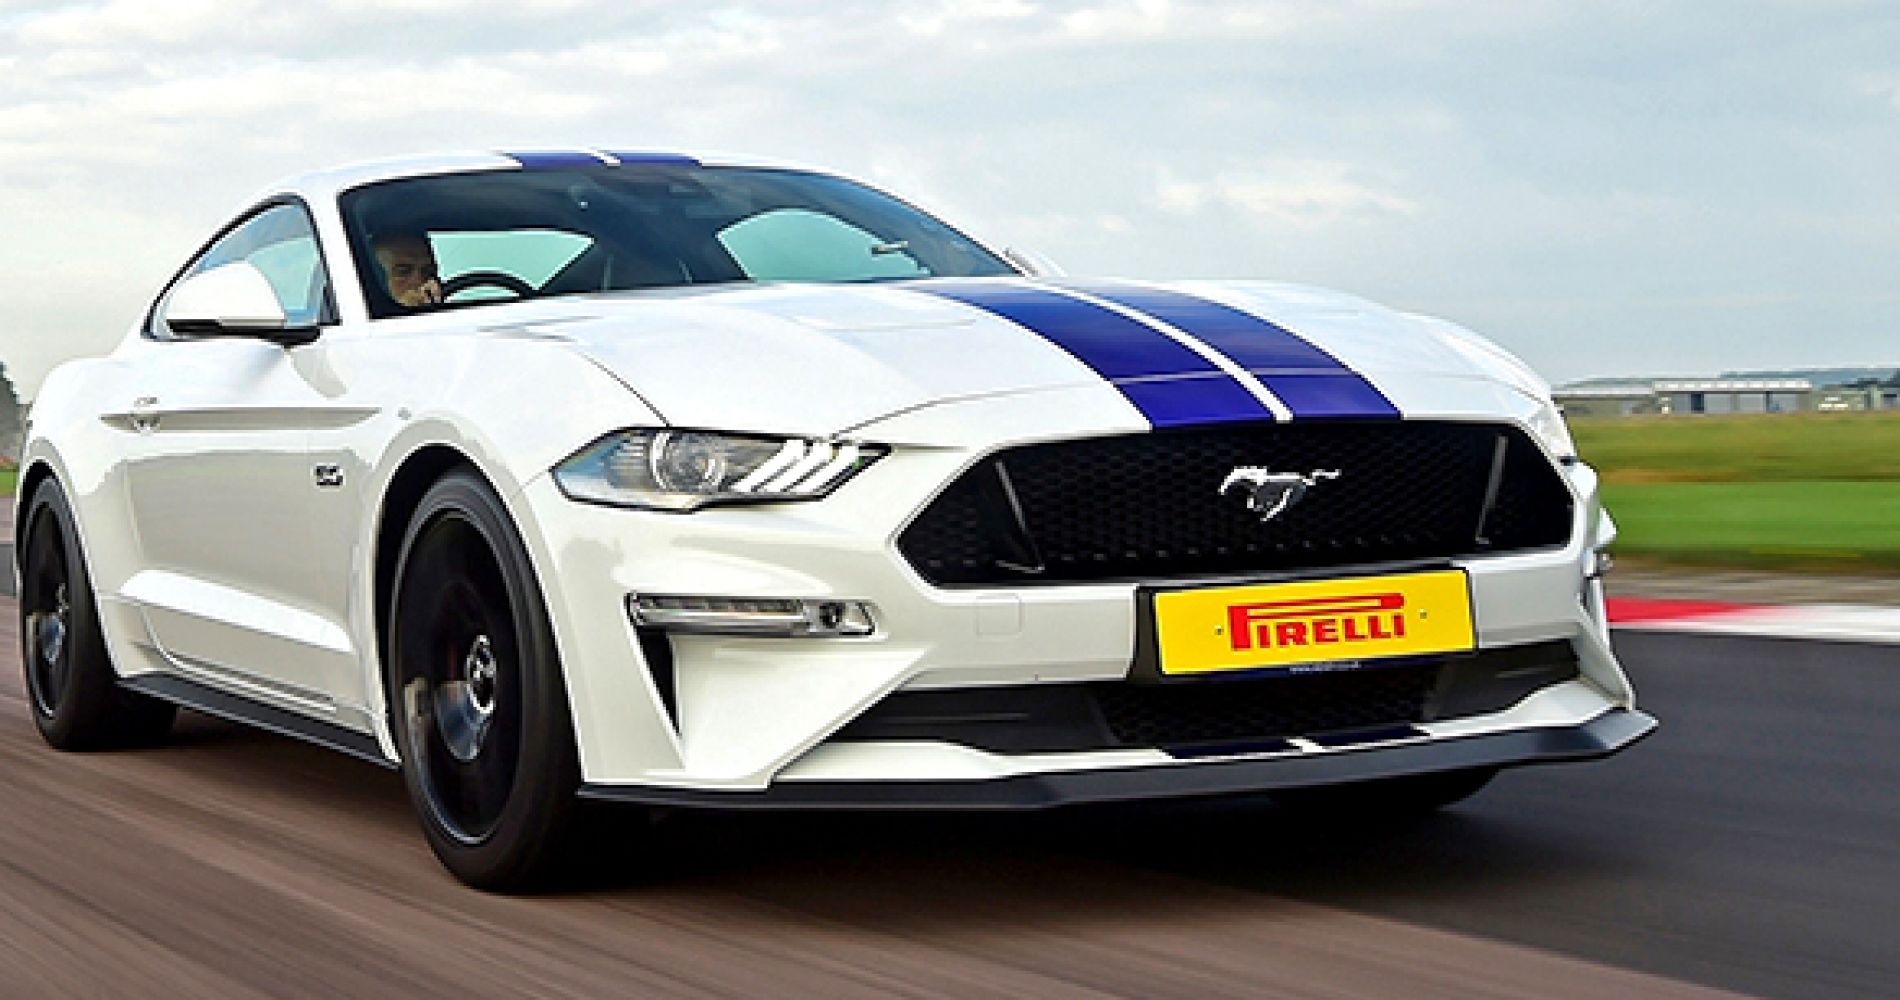 Ford Mustang Thrill in United Kingdom for Two